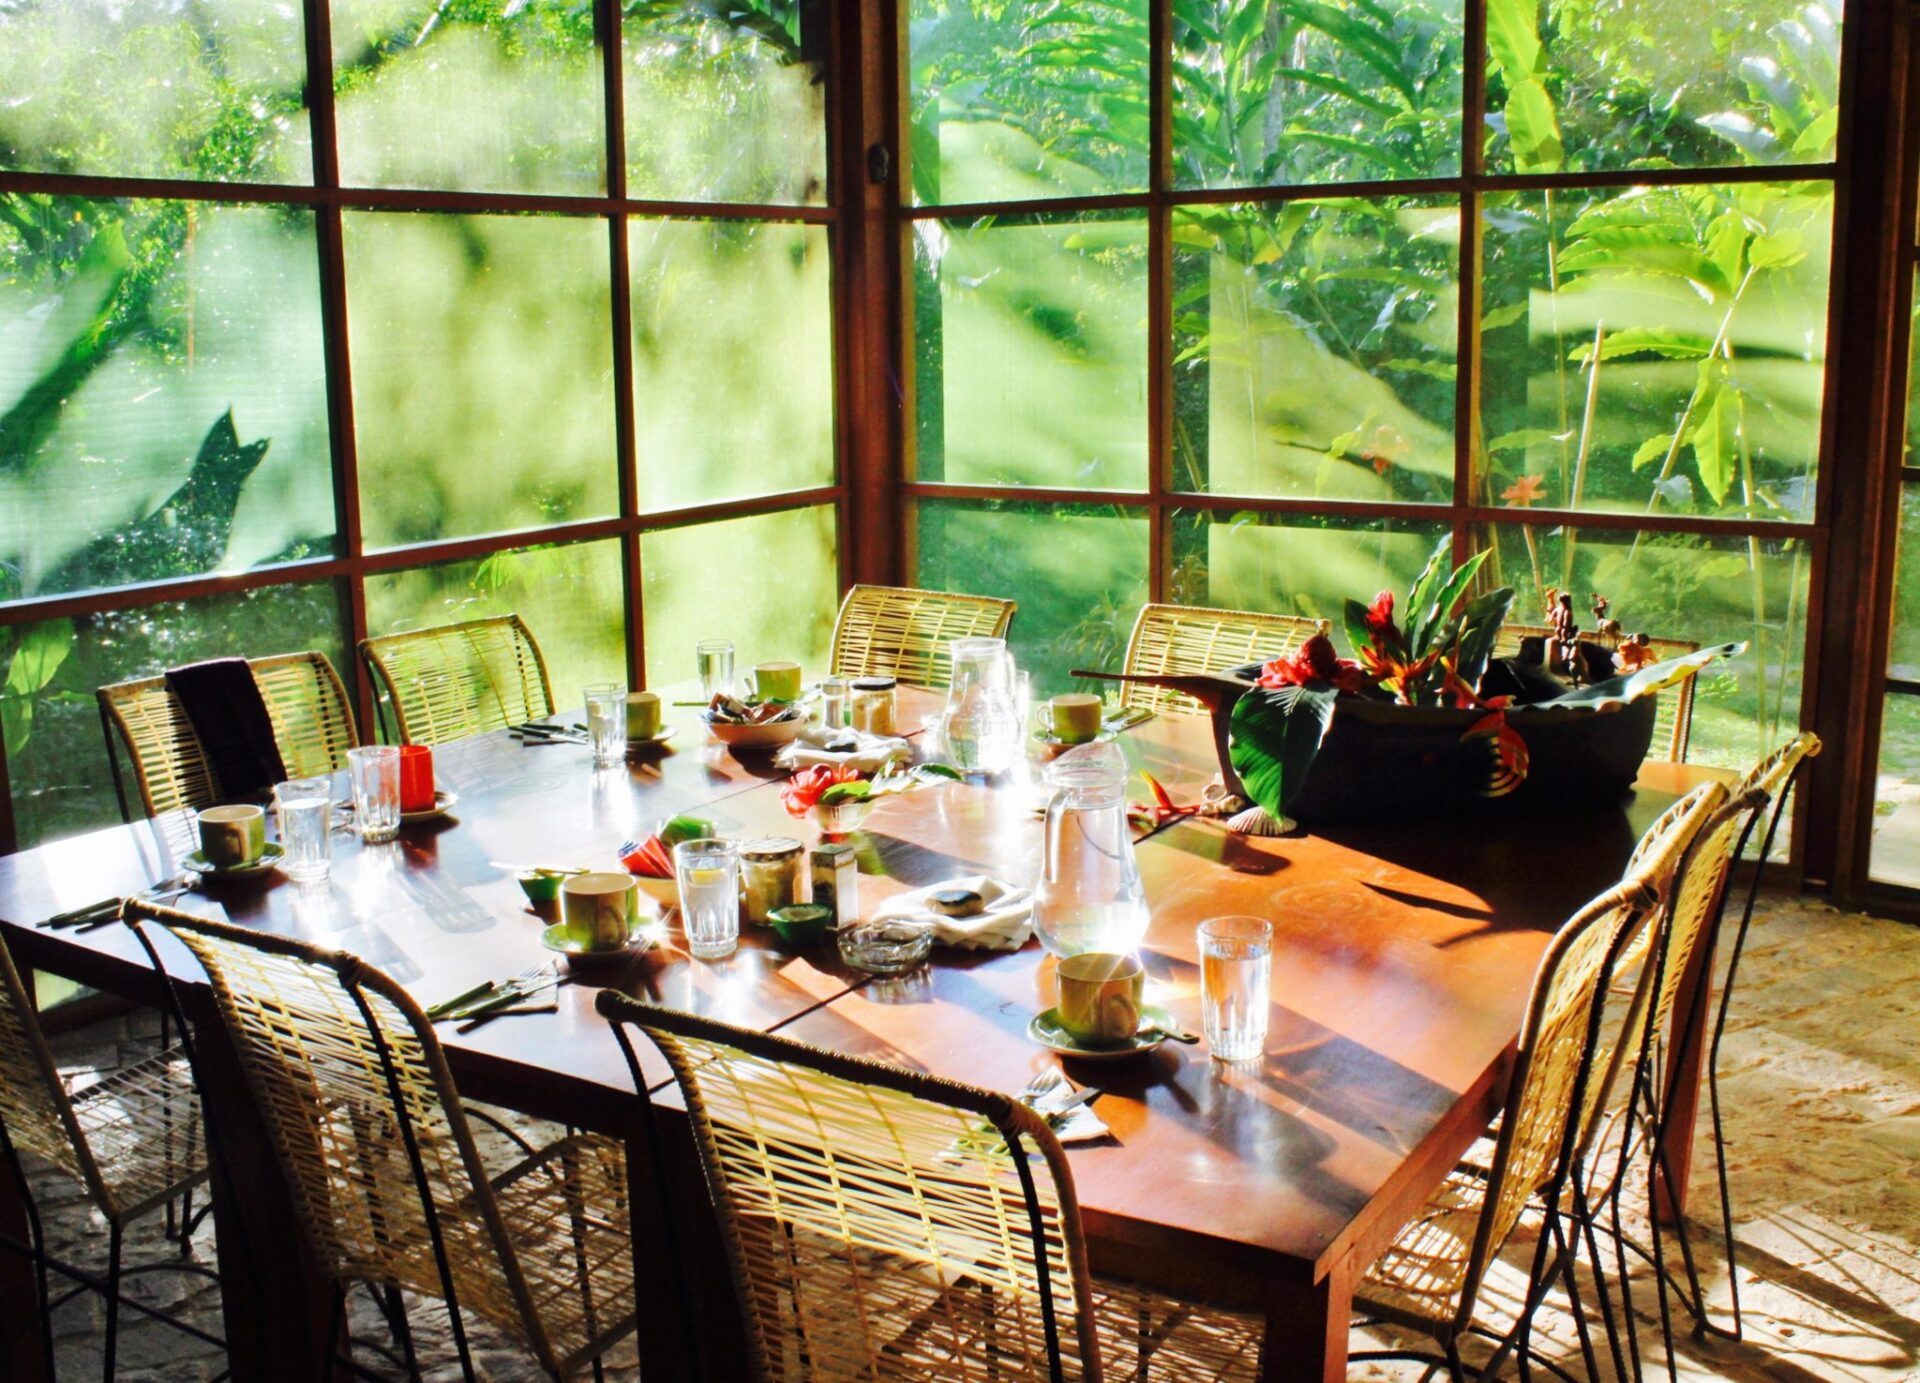 Breakfast set up for Ayahuasca workshop